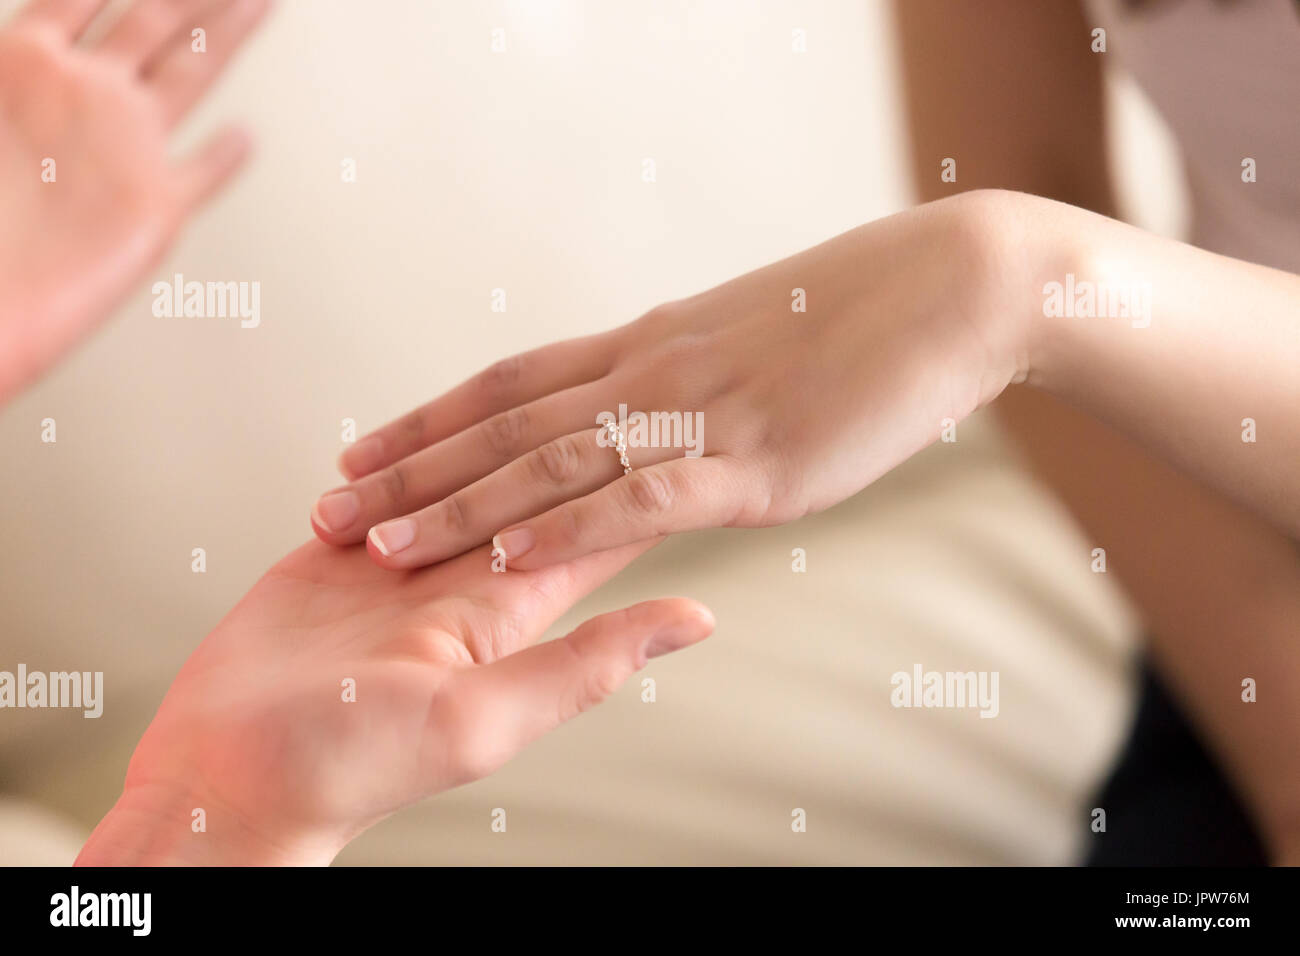 Image of female hand with ring on fourth finger Stock Photo Royalty